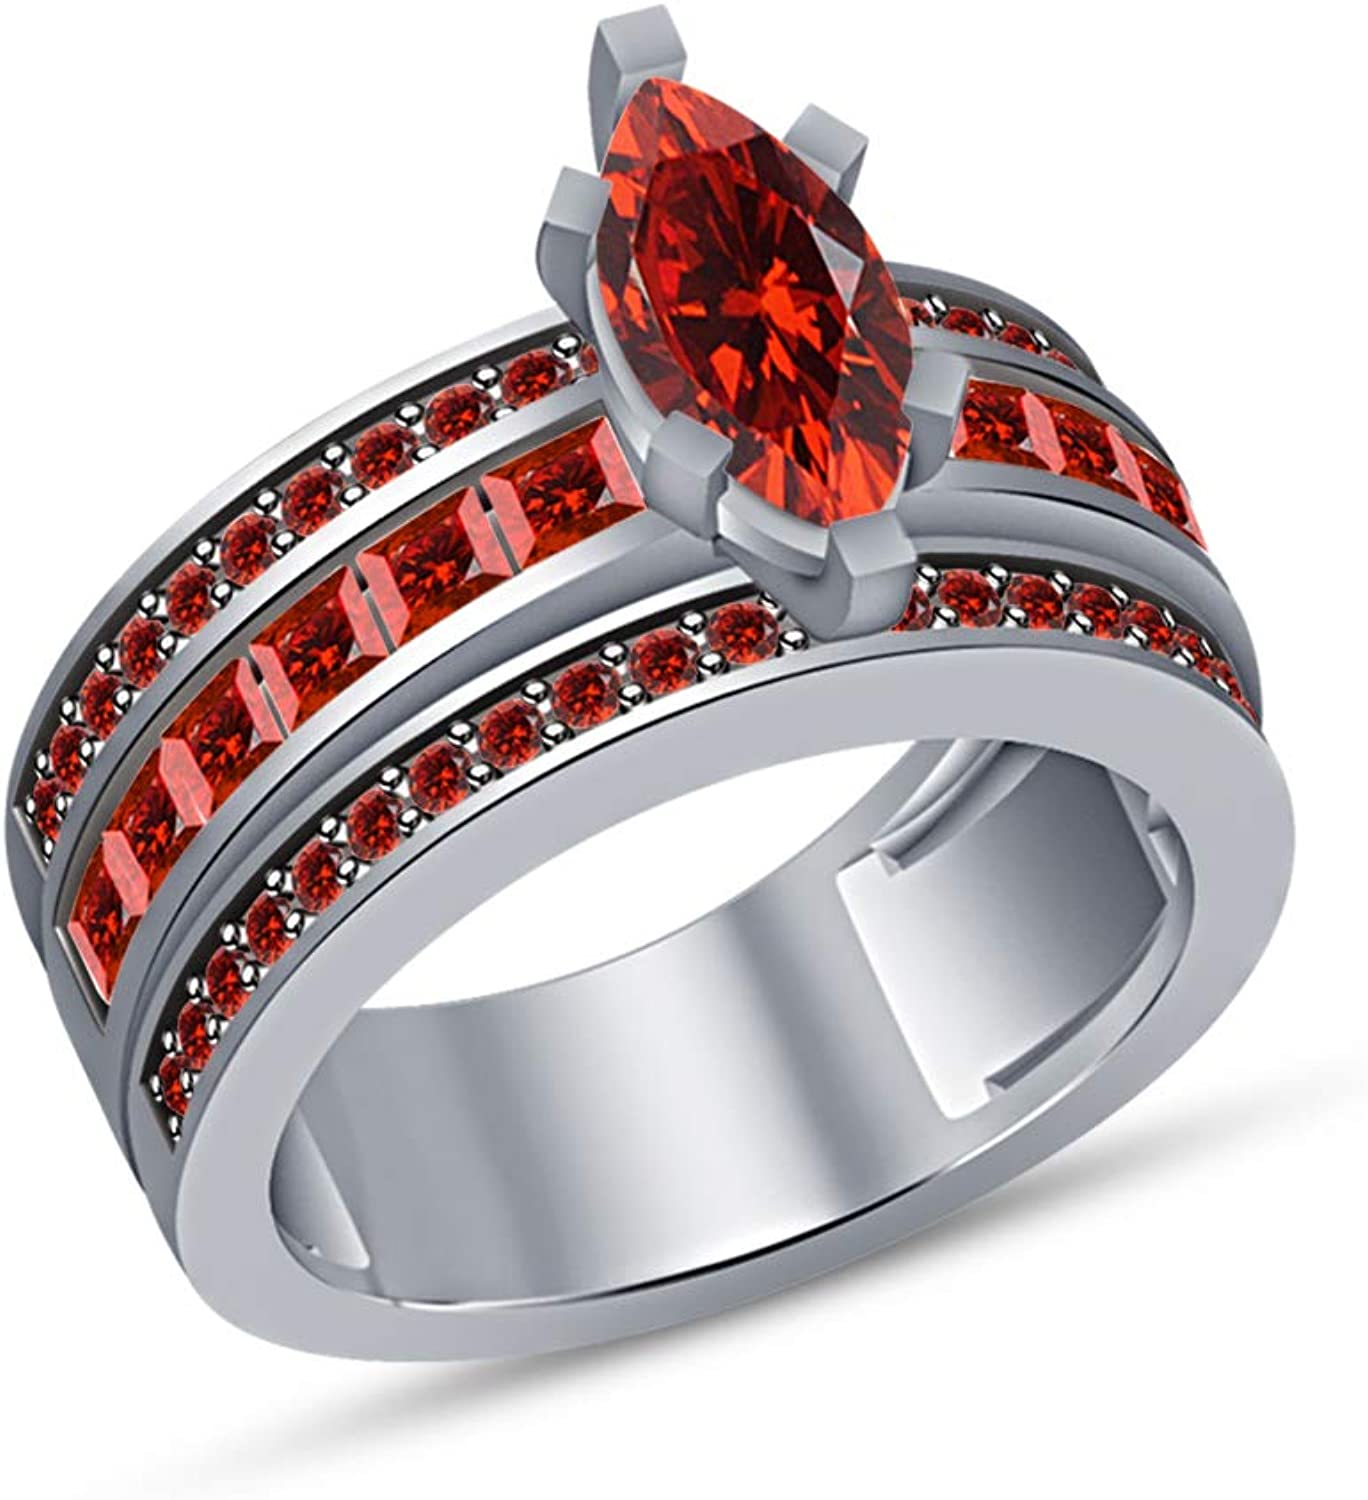 Vorra Fashion Engagement Ring for Women Marquise Shape Red Garnet in Solid White Platinum Plated